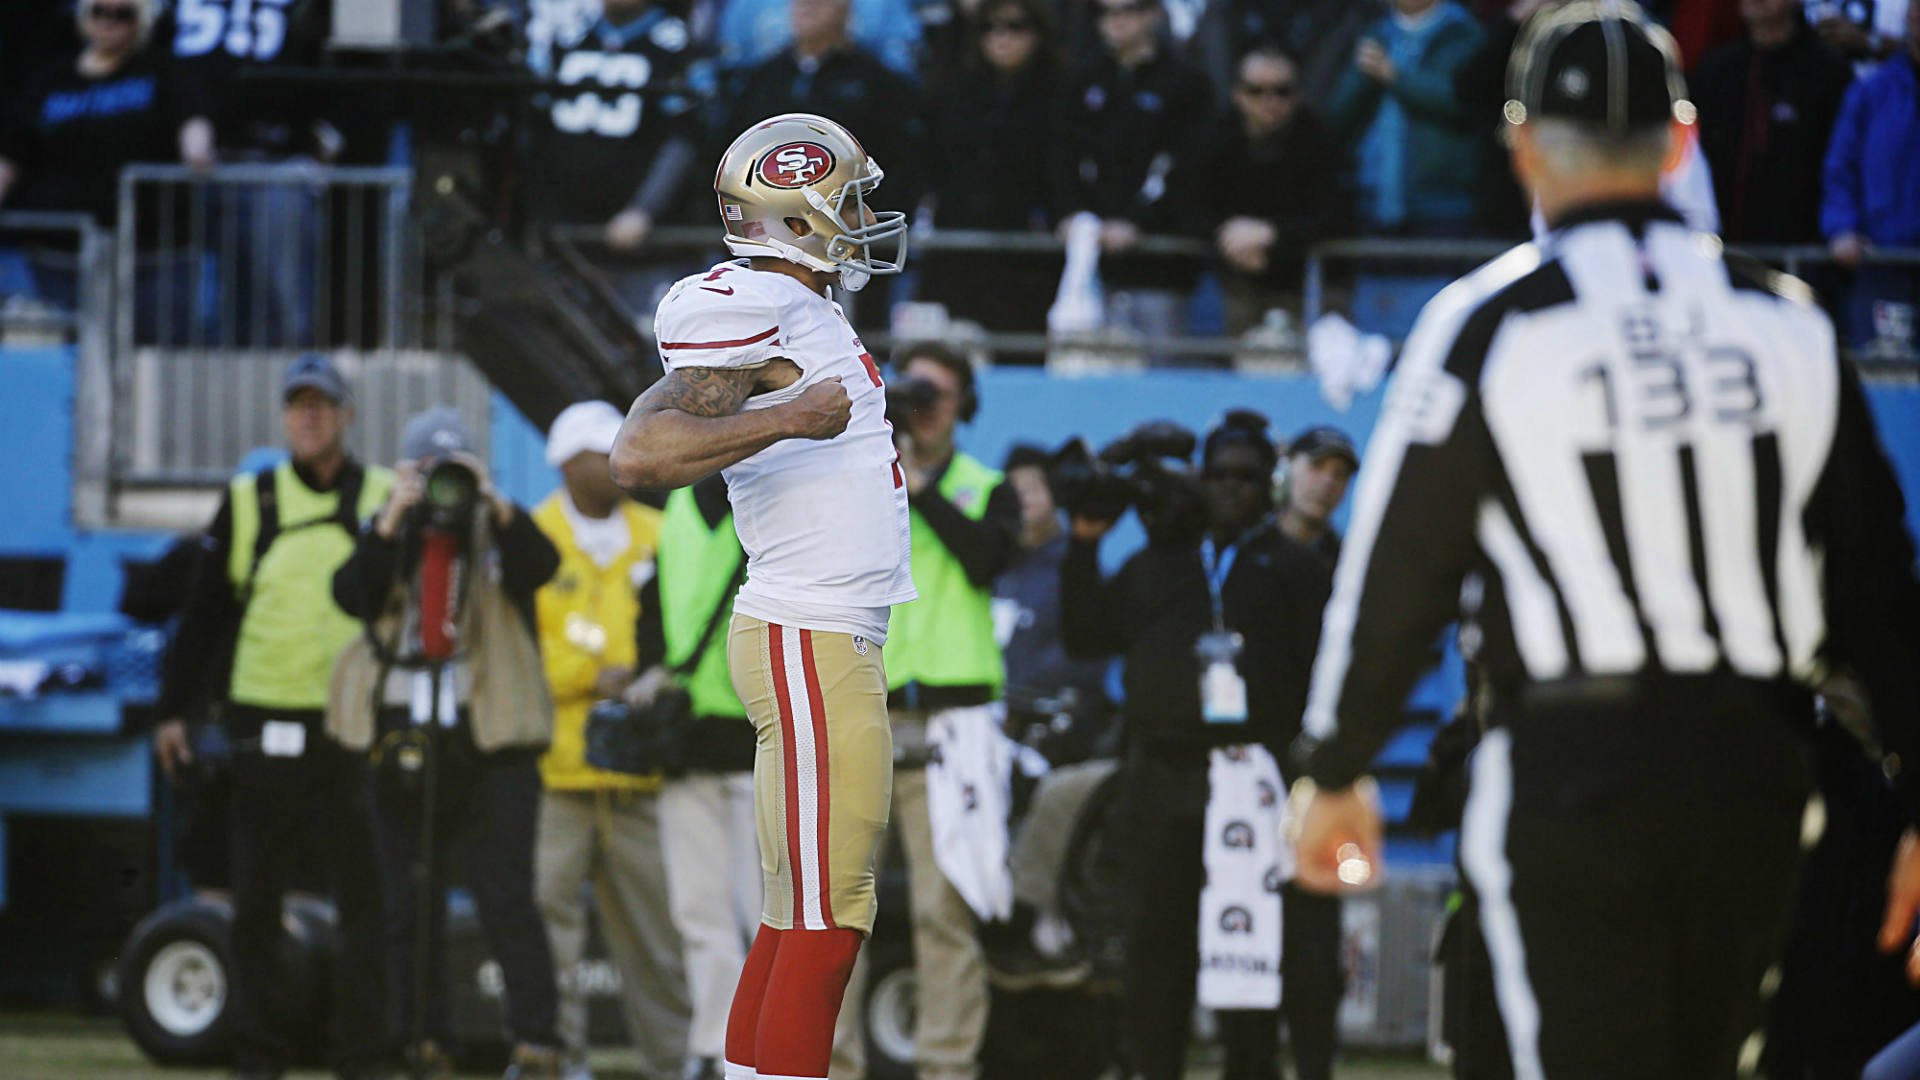 NFL Divisional Round fantasy football roundup